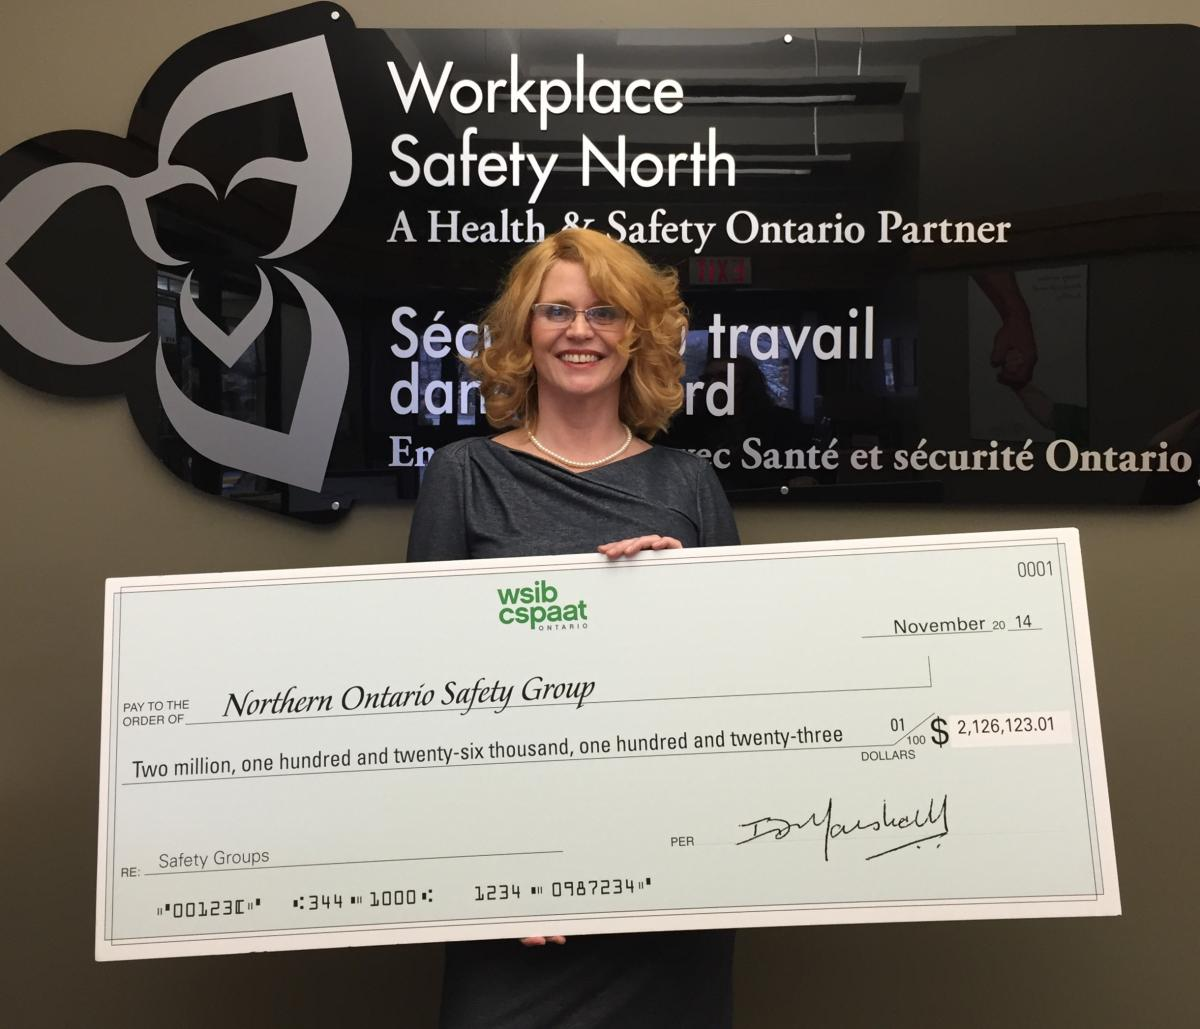 Safety group rebate cheque